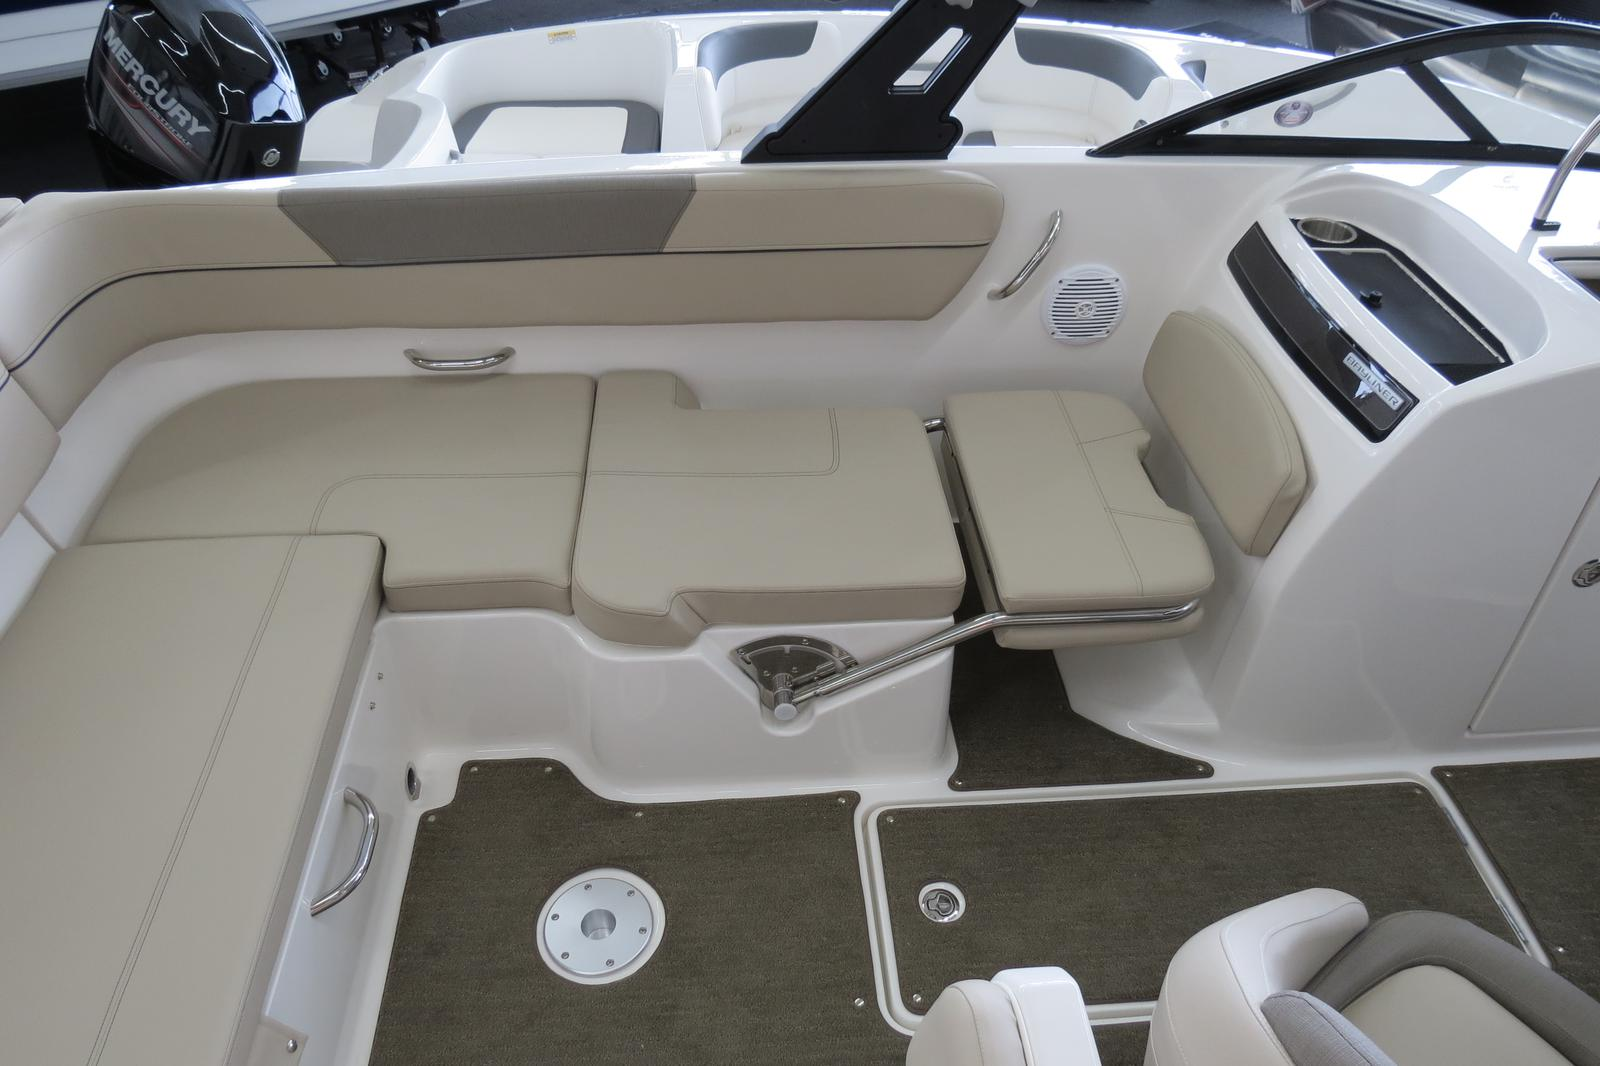 2019 Bayliner boat for sale, model of the boat is VR6 Bowrider & Image # 4 of 7